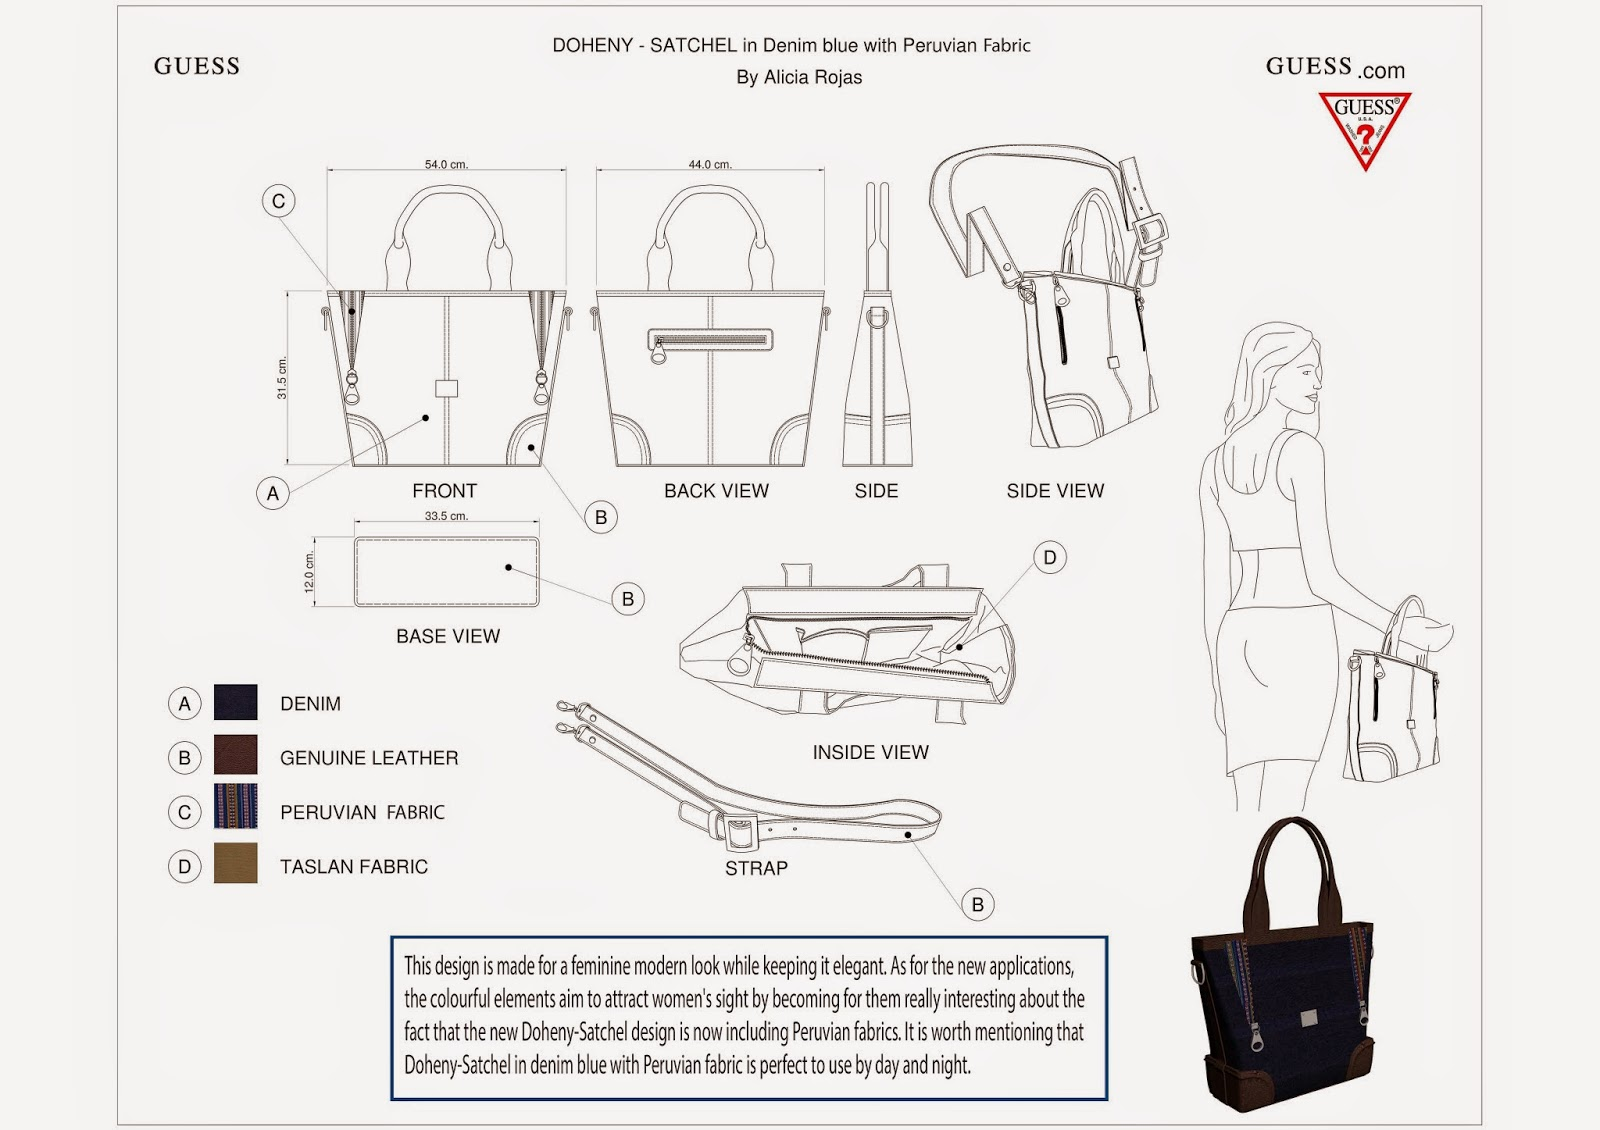 A Great Honor To Be One Of The Finalists In An International Design Compeion 2017 Independent Handbag Designers Awards Distinctly Denim